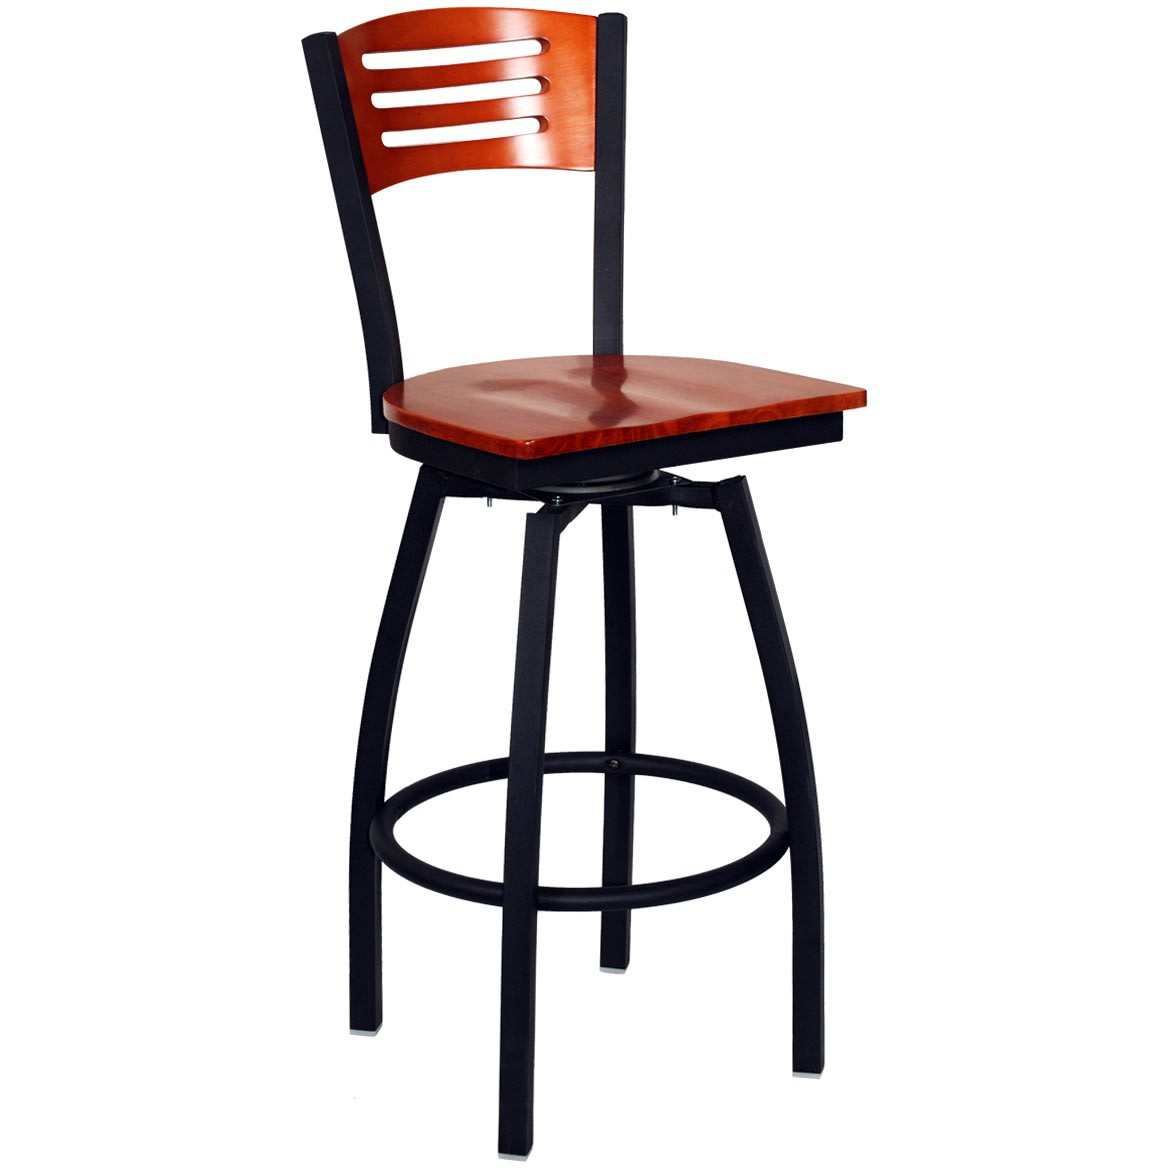 Interchangeable Back Swivel Bar Stool with 3 Slats